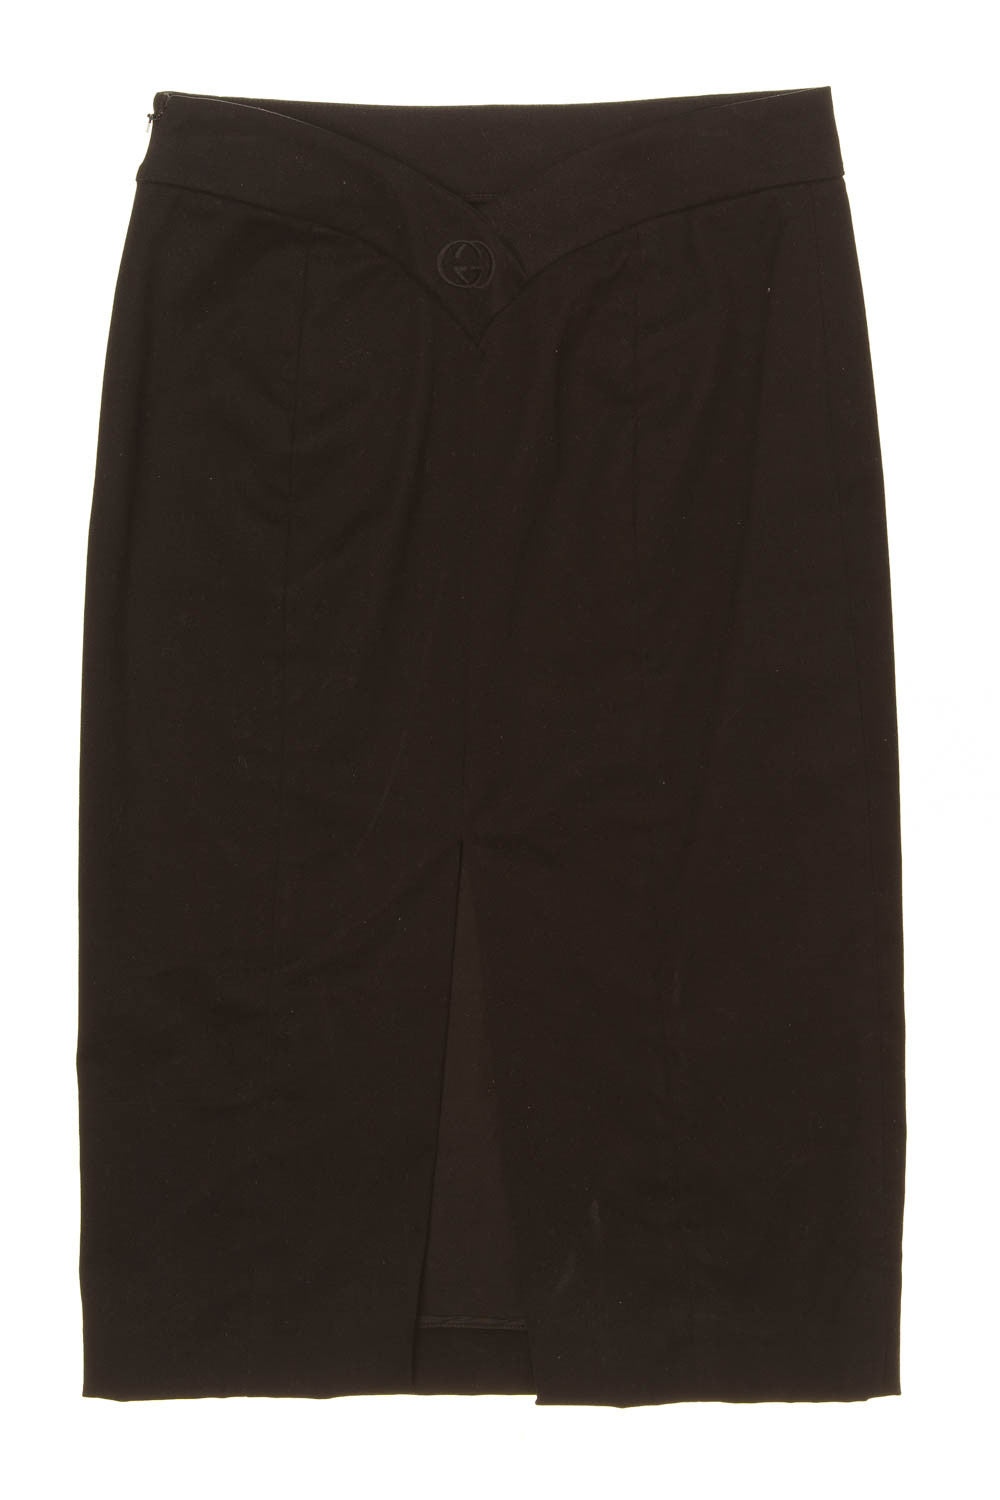 Iconic Tom Ford for Gucci - Black Pencil Skirt - IT 40